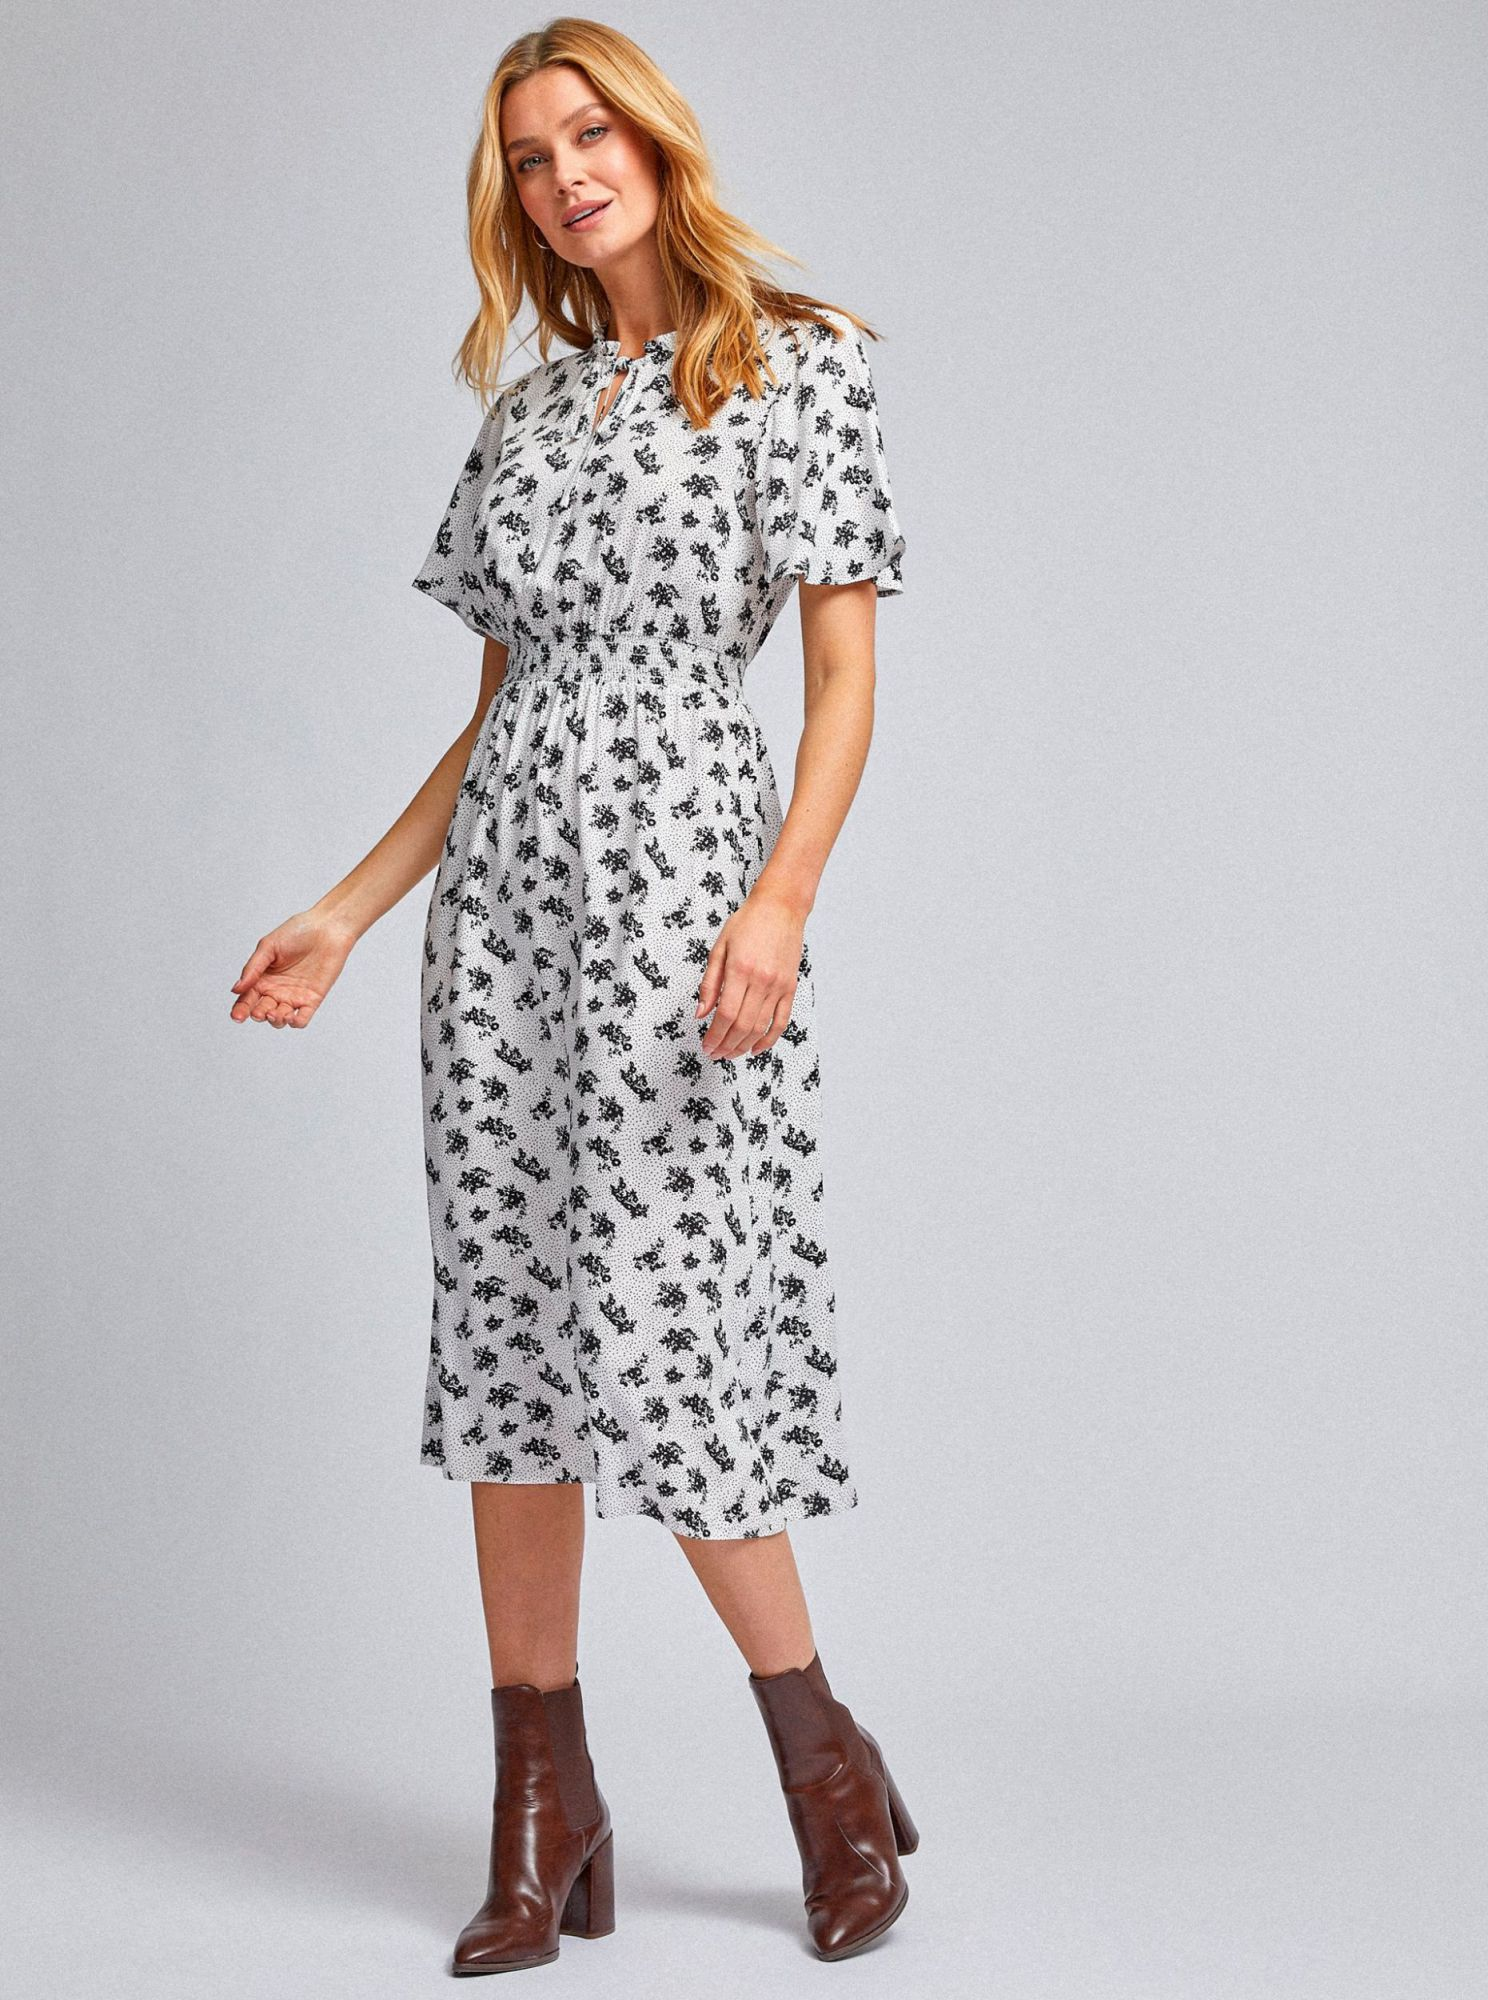 White patterned midi dress by Dorothy Perkins